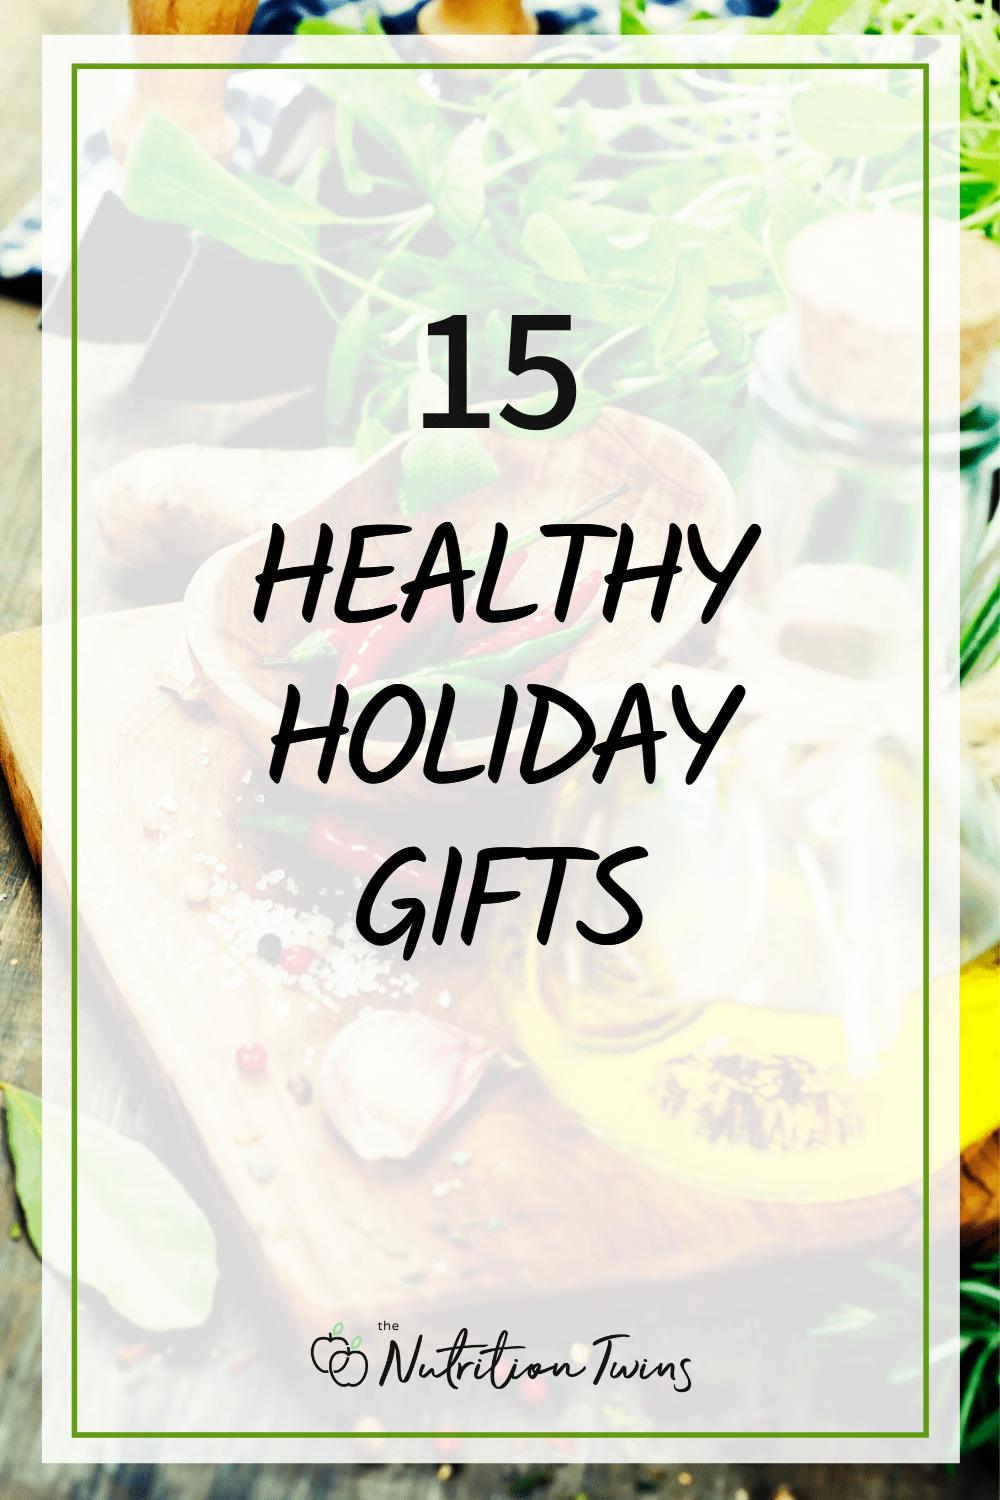 15 Healthy Gift Ideas from Registered Dietitians